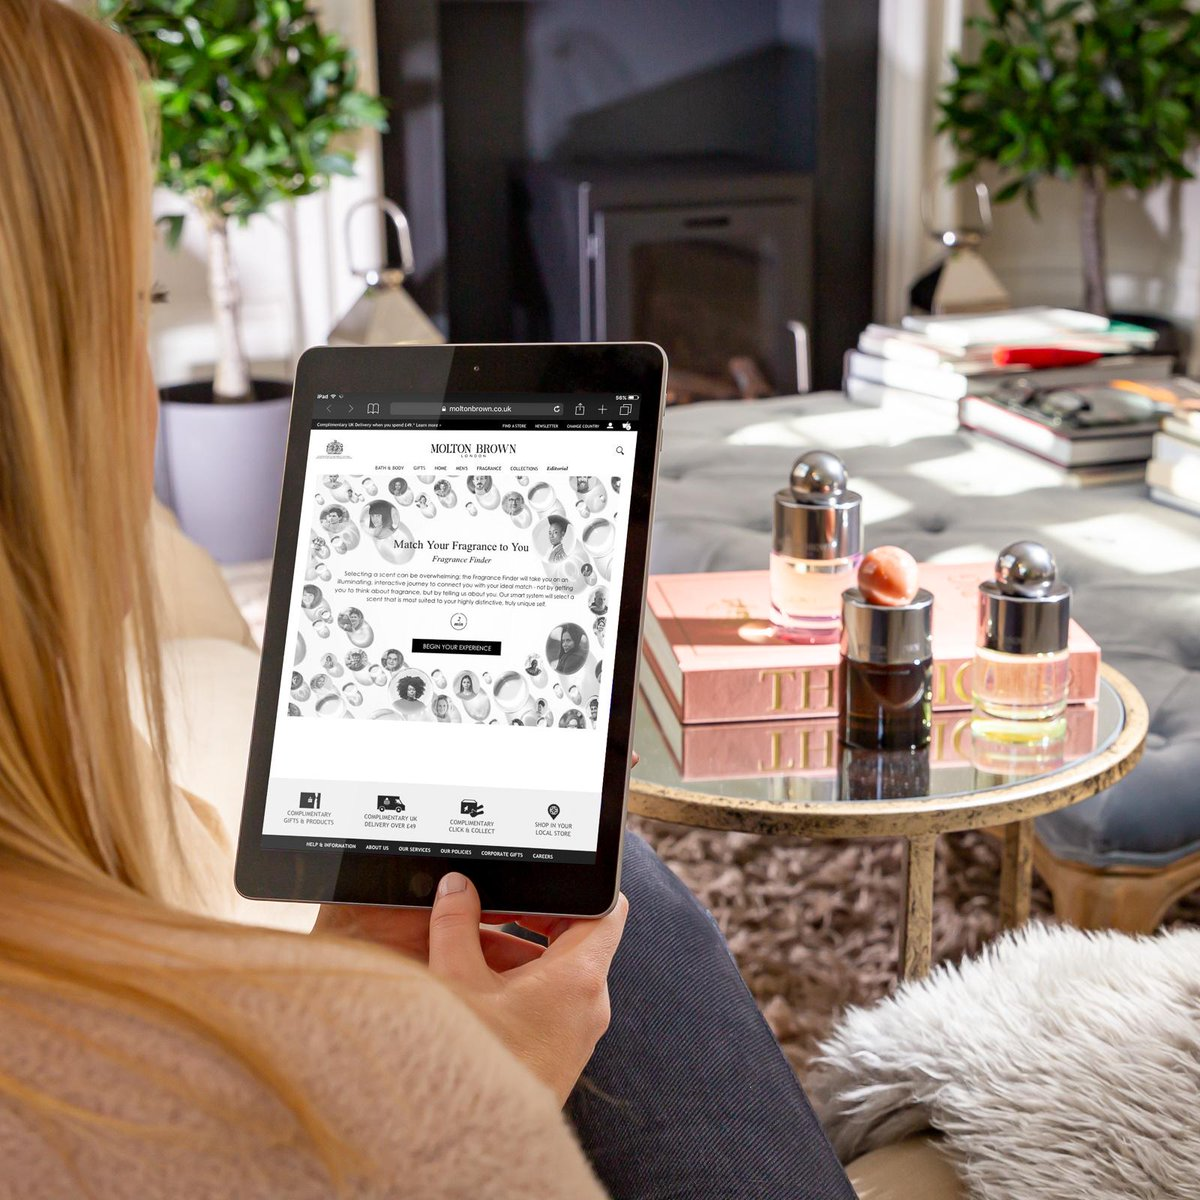 Molton Brown Uk On Twitter And Now For An Online Quiz You Ll Love Find Your Signature Scent Your Perfect Fragrance Personality And Match Embark On An Illuminating Interactive Journey With Our Fragrance